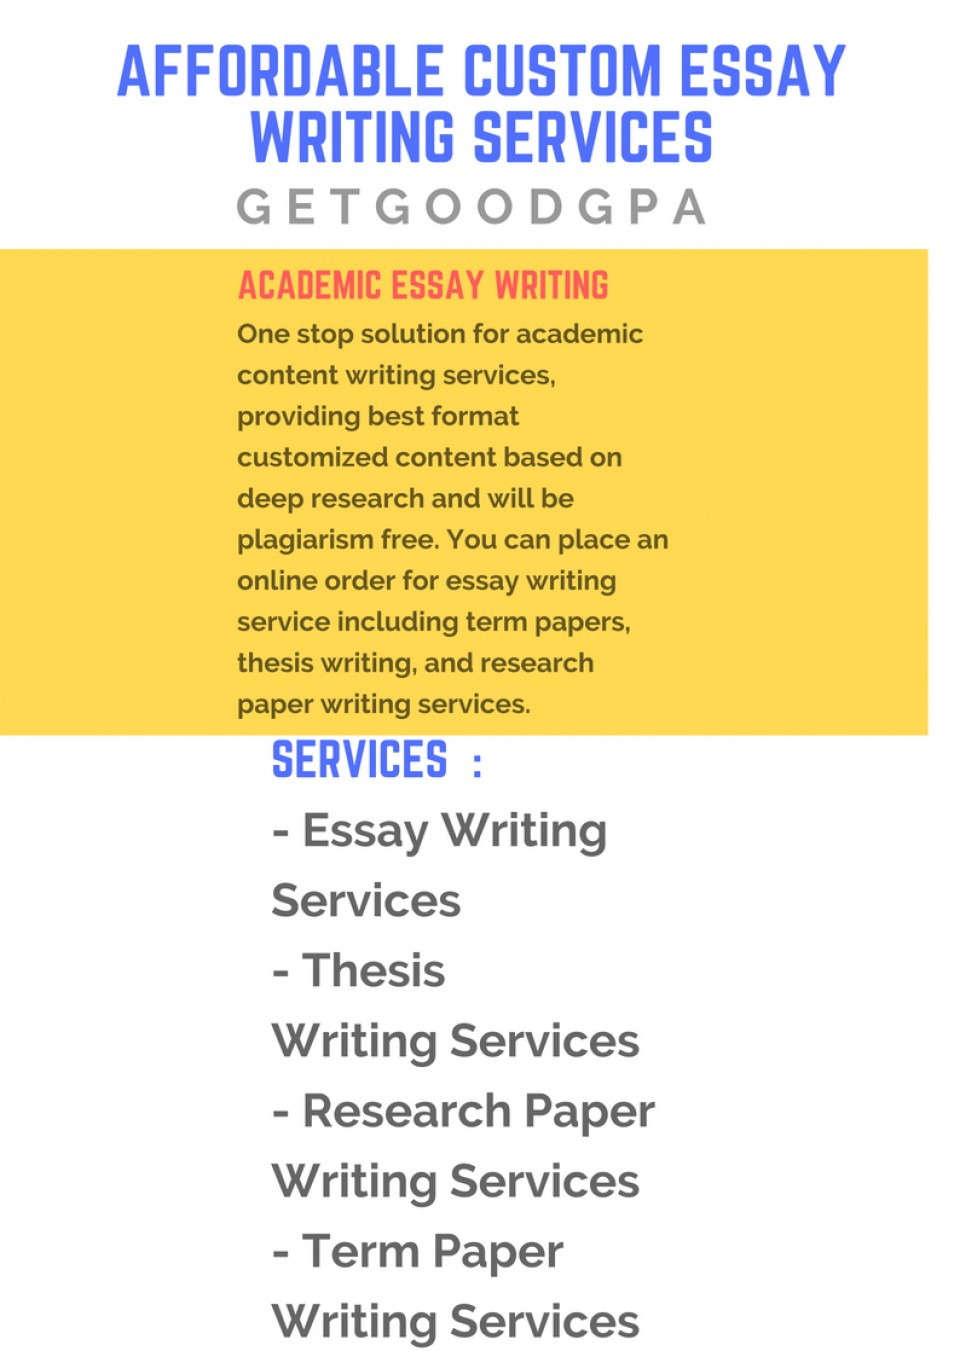 002 1p24u5izogrgxlkfzqmxvgq Research Paper Writing Dreaded Service Services In India Best Academic Online 960